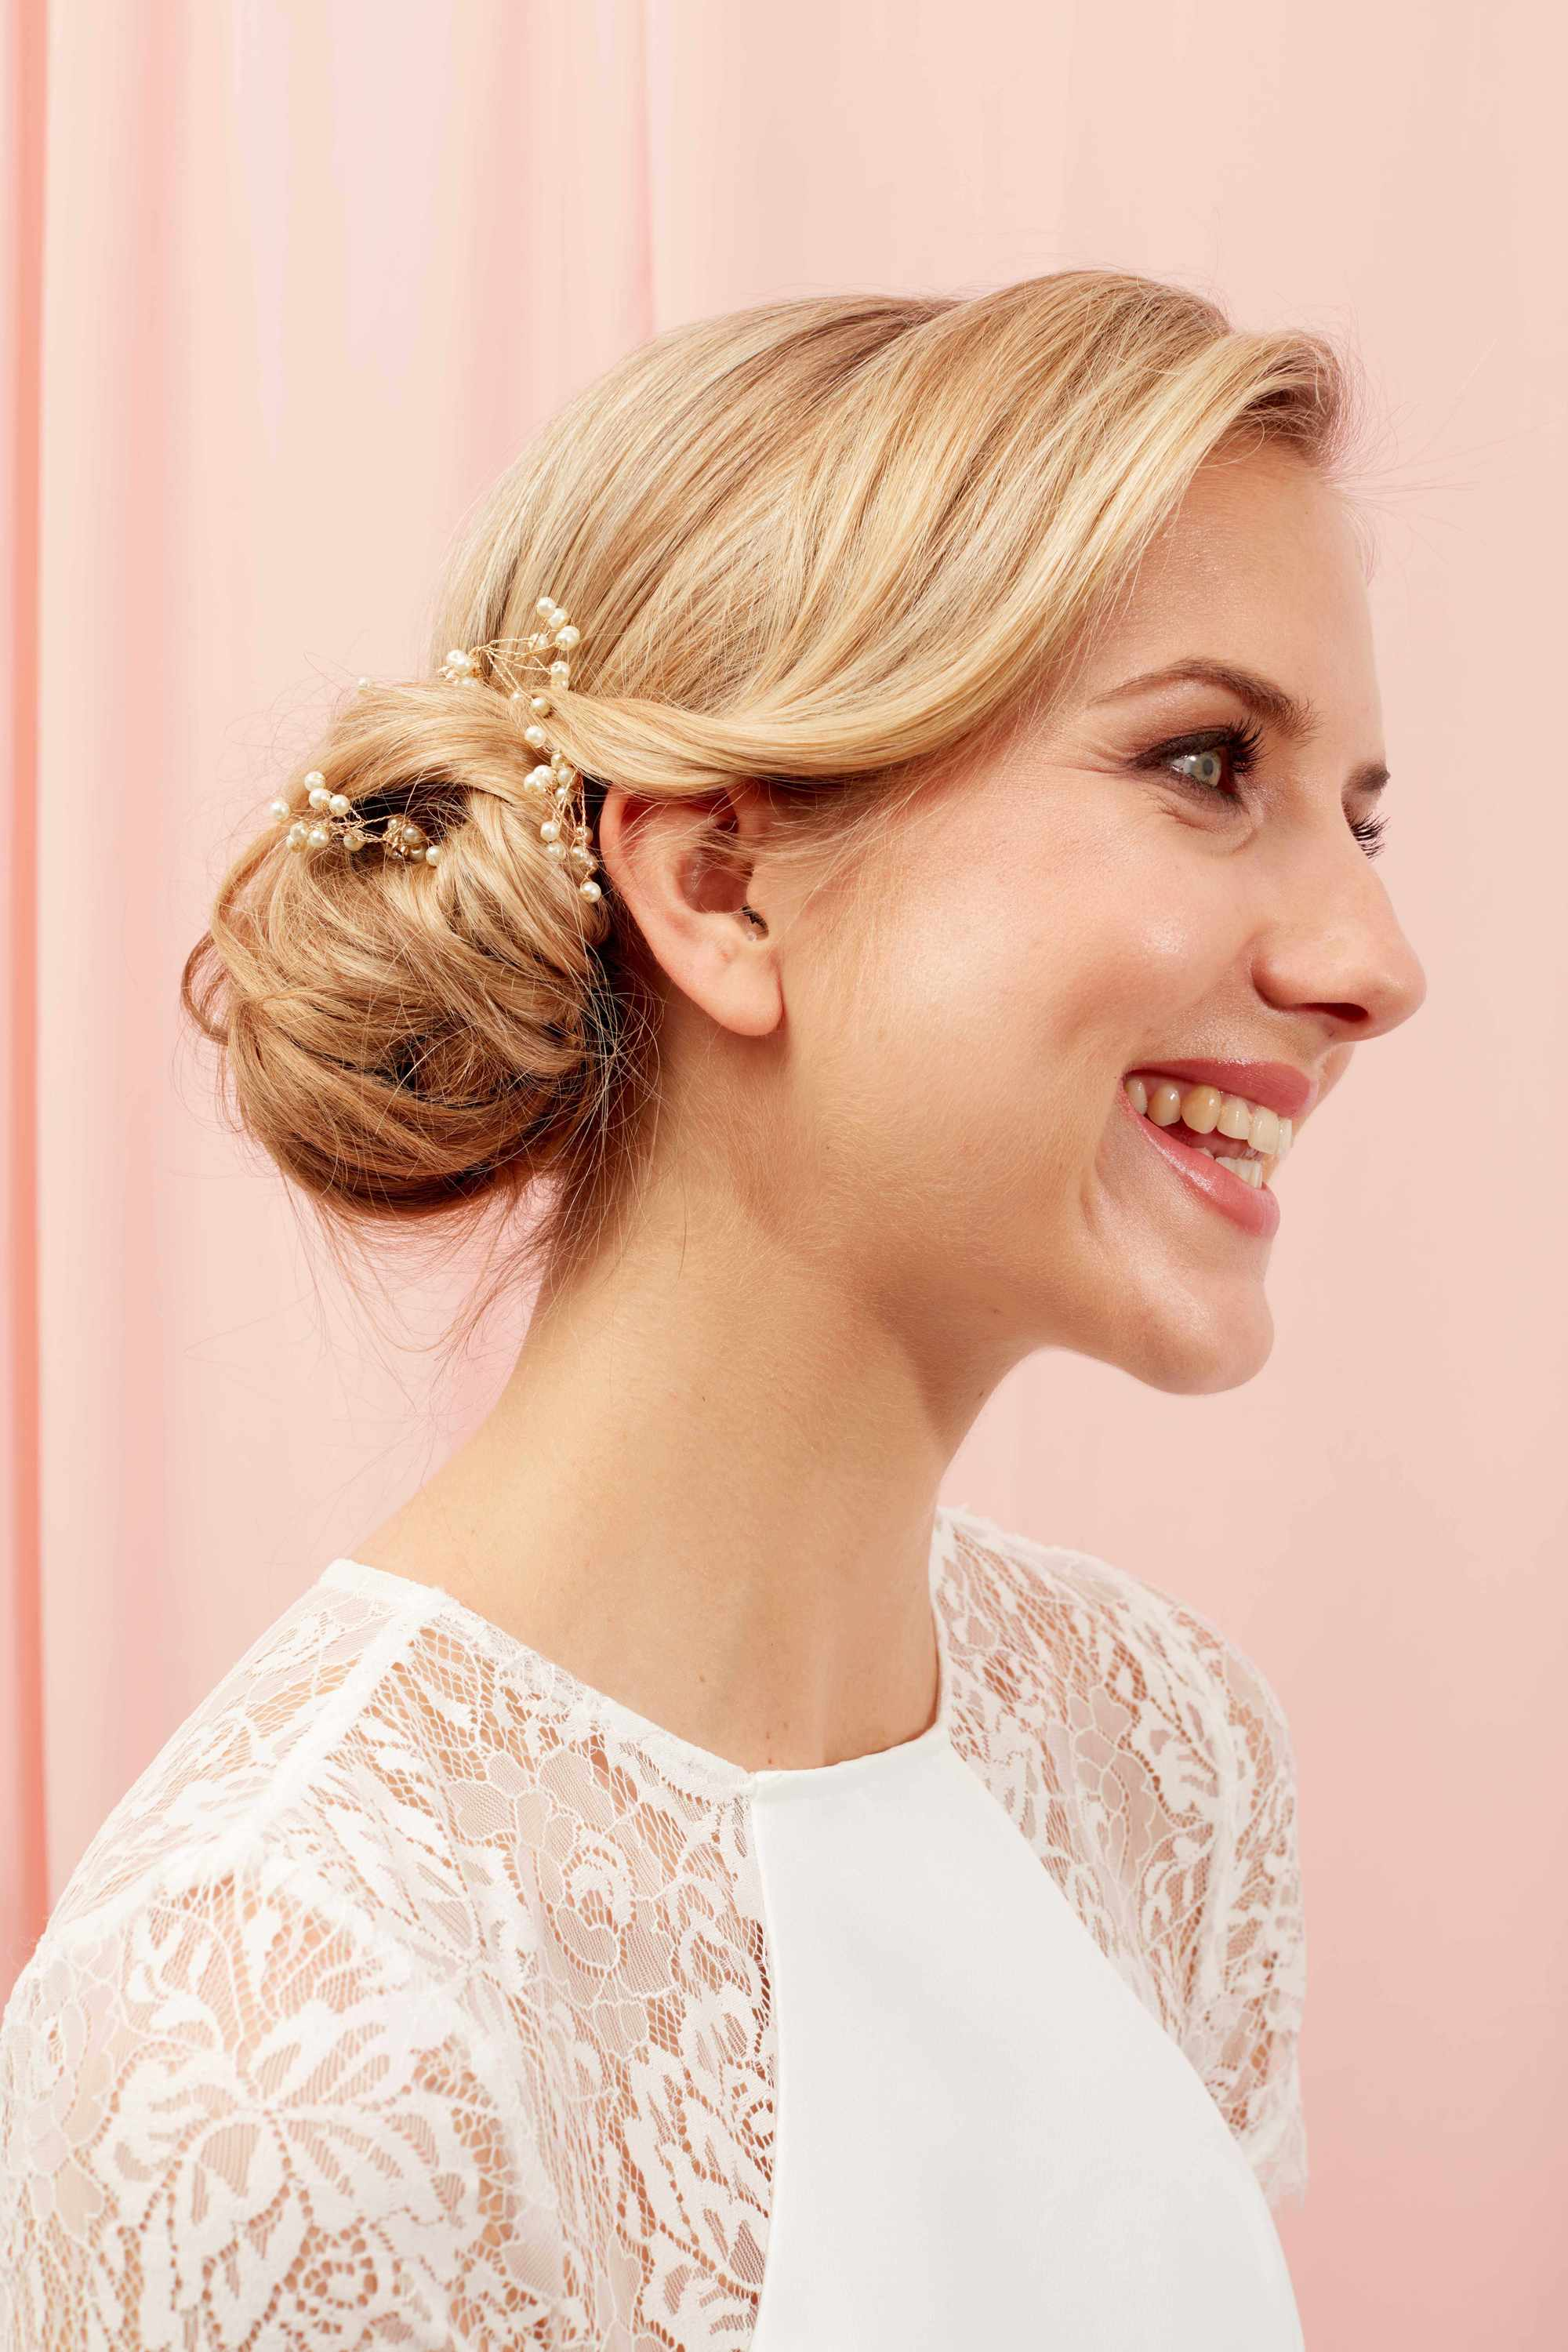 Bride with golden blonde hair styled into a low bun with pearls in it